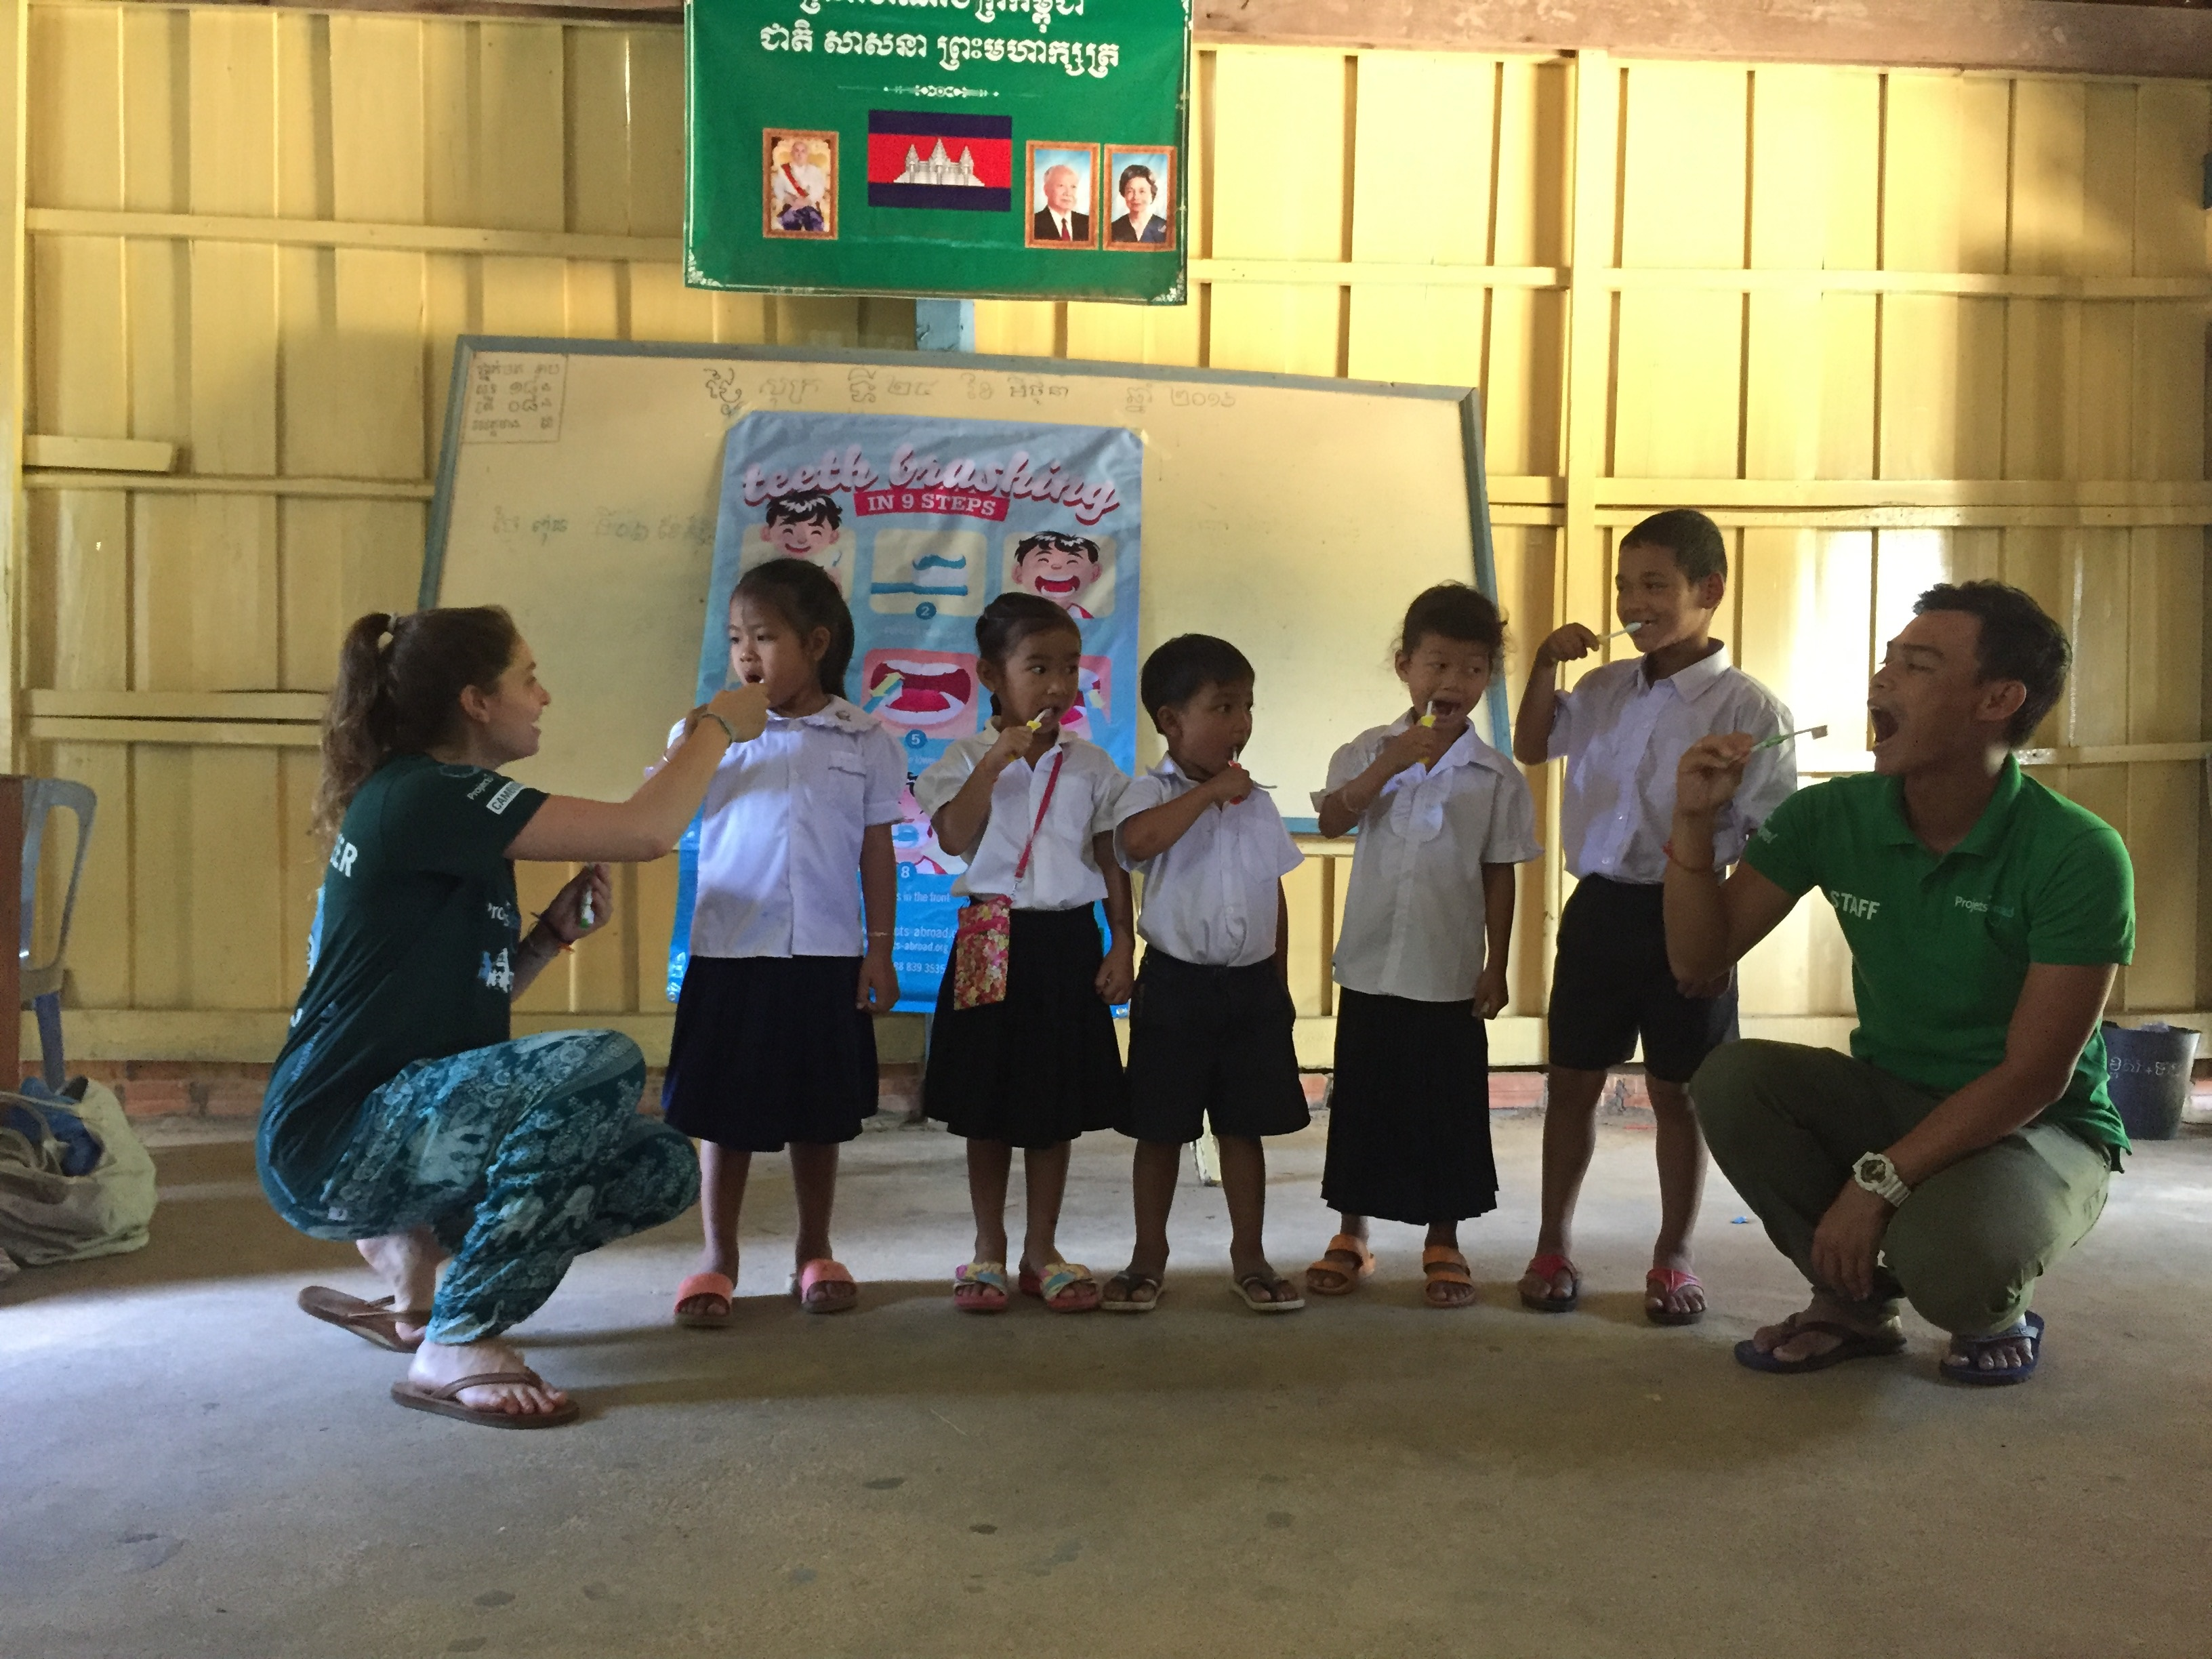 A volunteer and staff show the kids how to brush their teeth